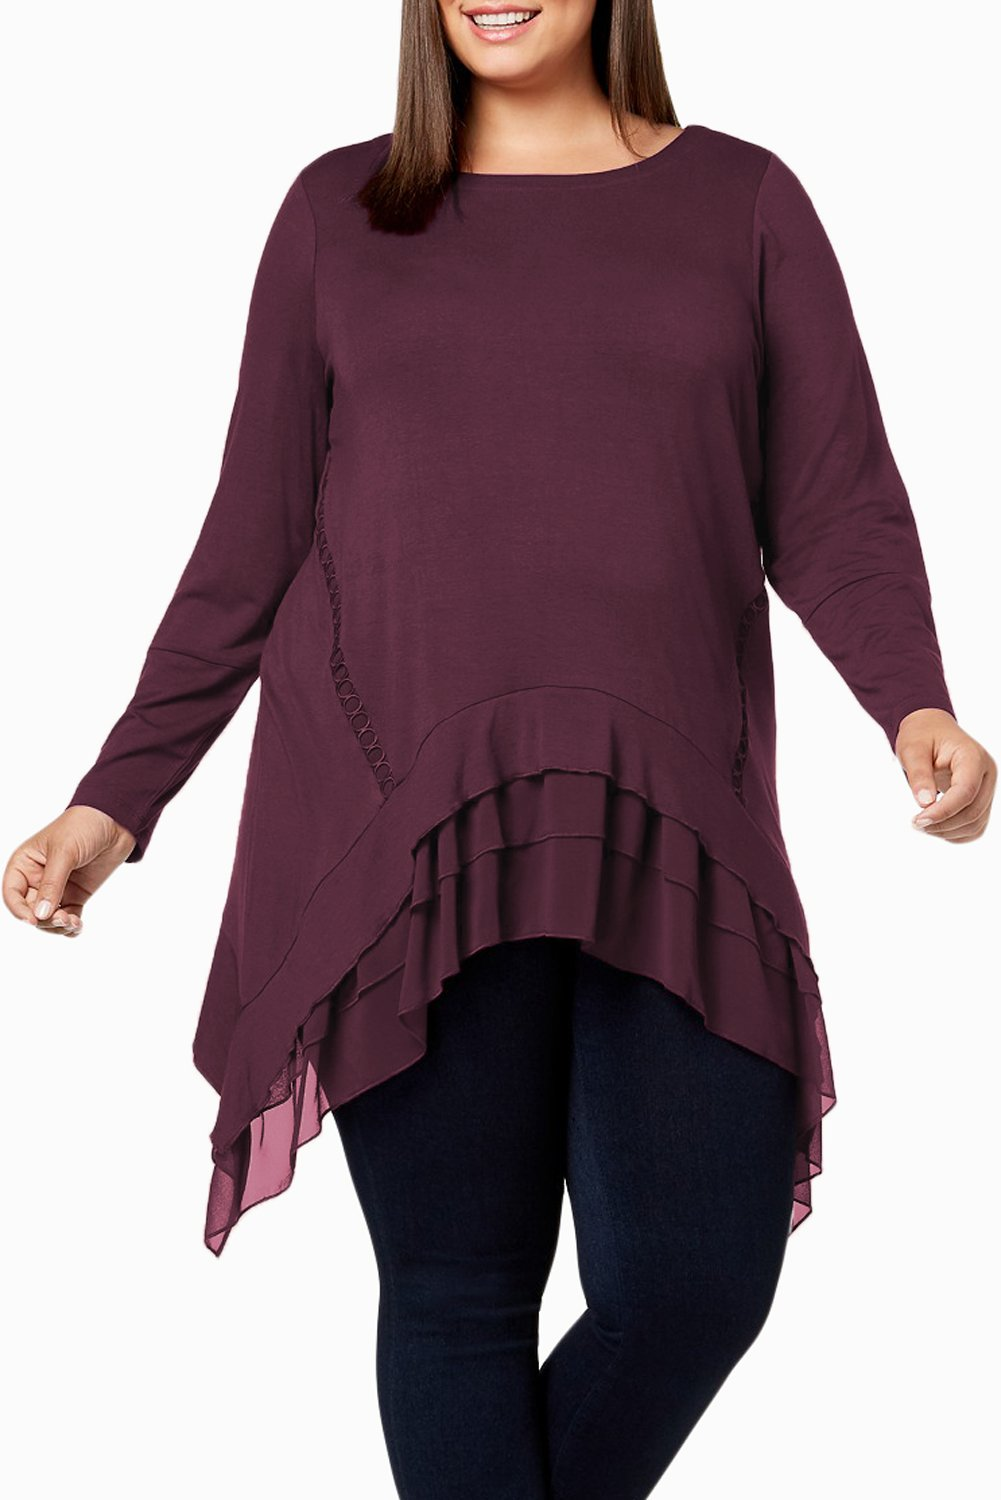 Burgundy Sheer Ruffled Splice Plus Size Top - Winter Haven Co